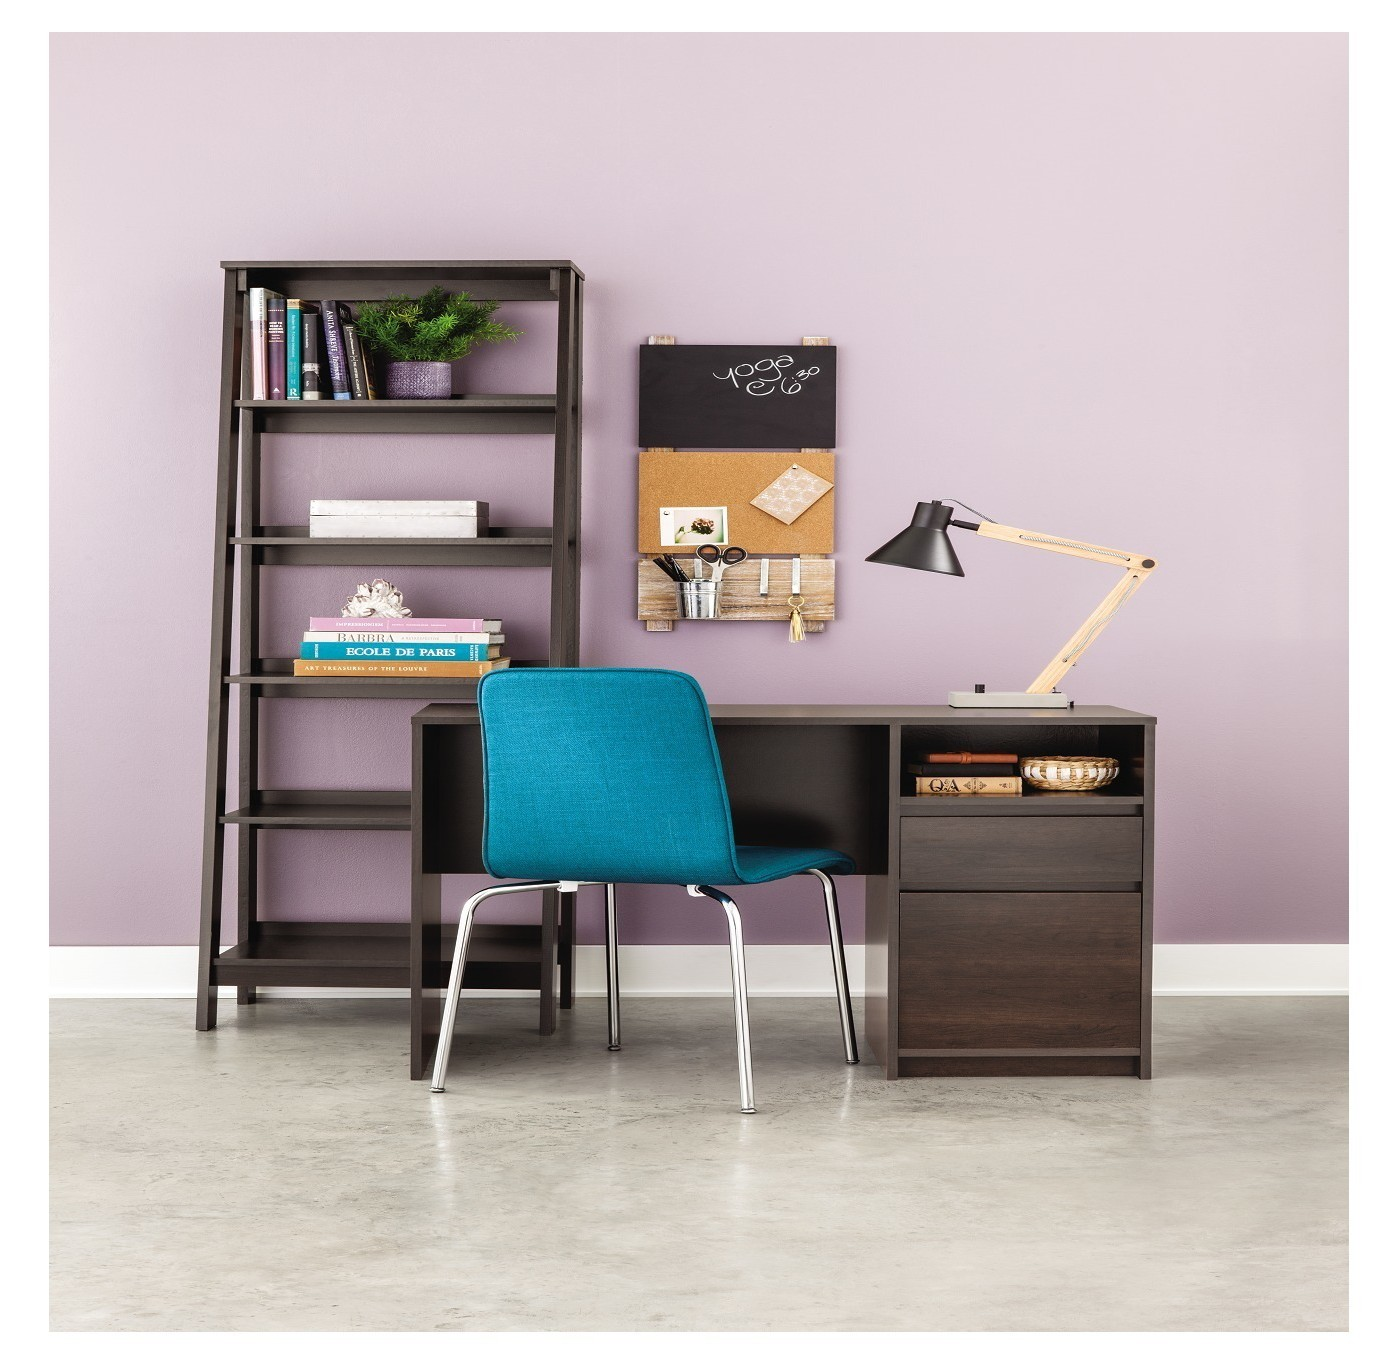 Target Introduces New Made By Design Home Brand